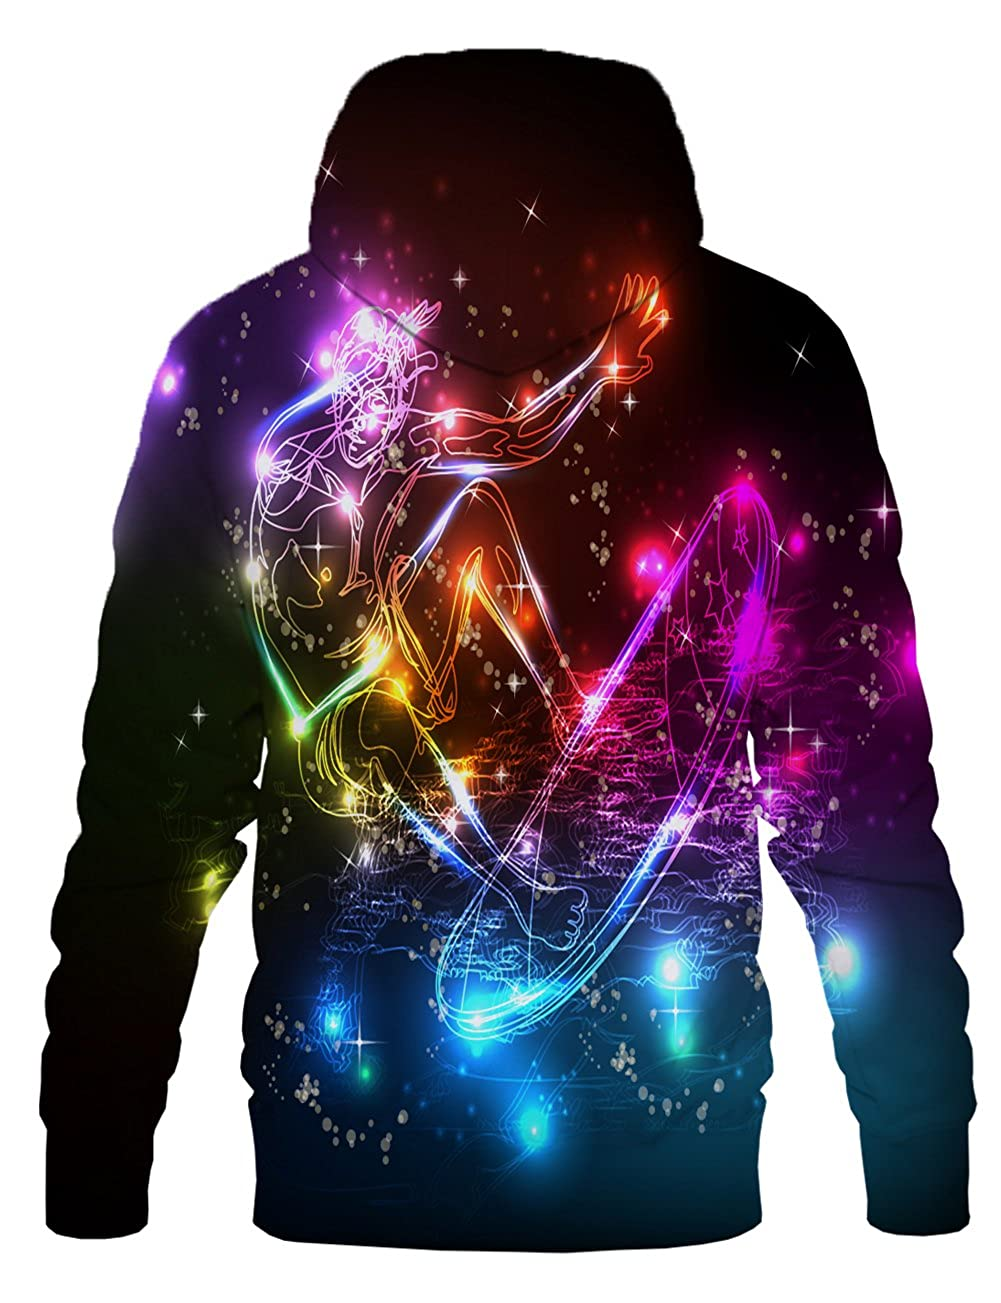 Yasswete Unisex 3D Fashion Digital Print Pullover Hooded Sweatshirts with Pockets